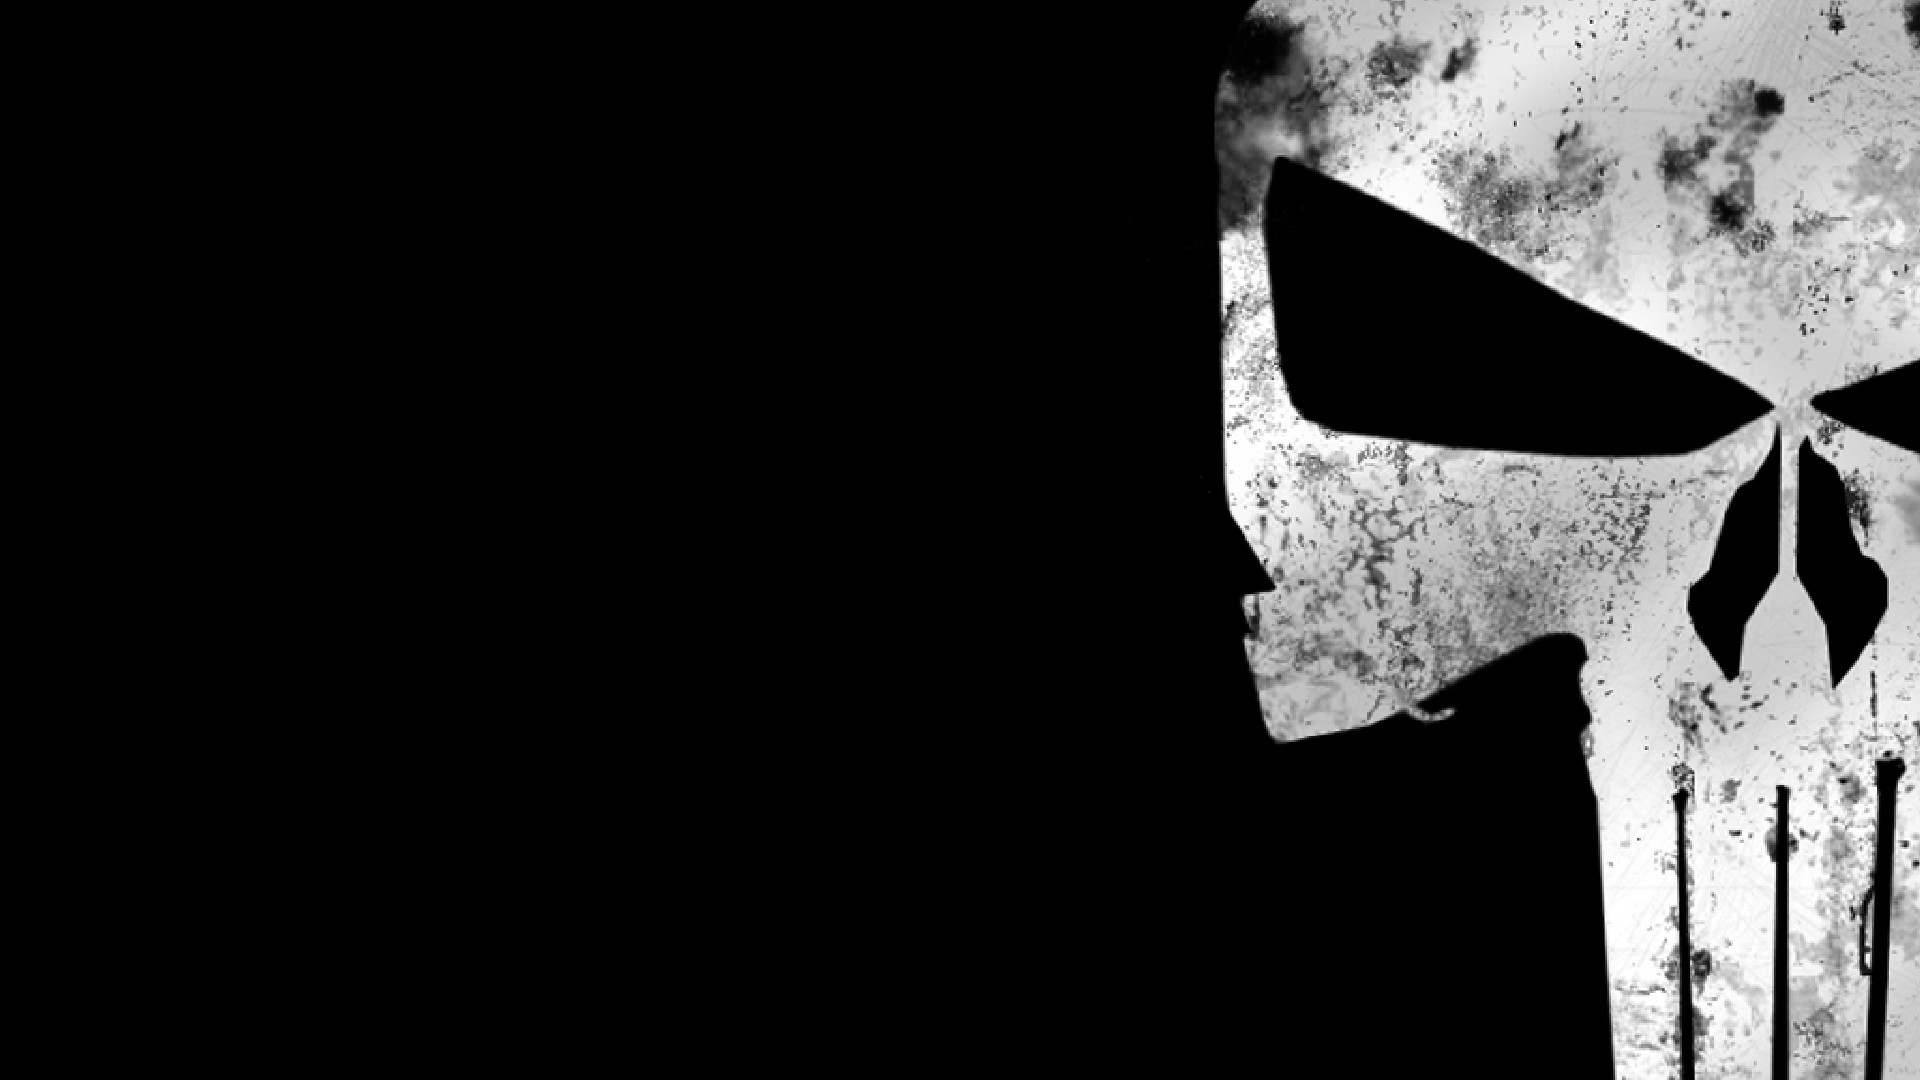 Hd Wallpapers For Mobile Free Download 480x800 The Punisher Wallpaper 183 ① Download Free Amazing Full Hd